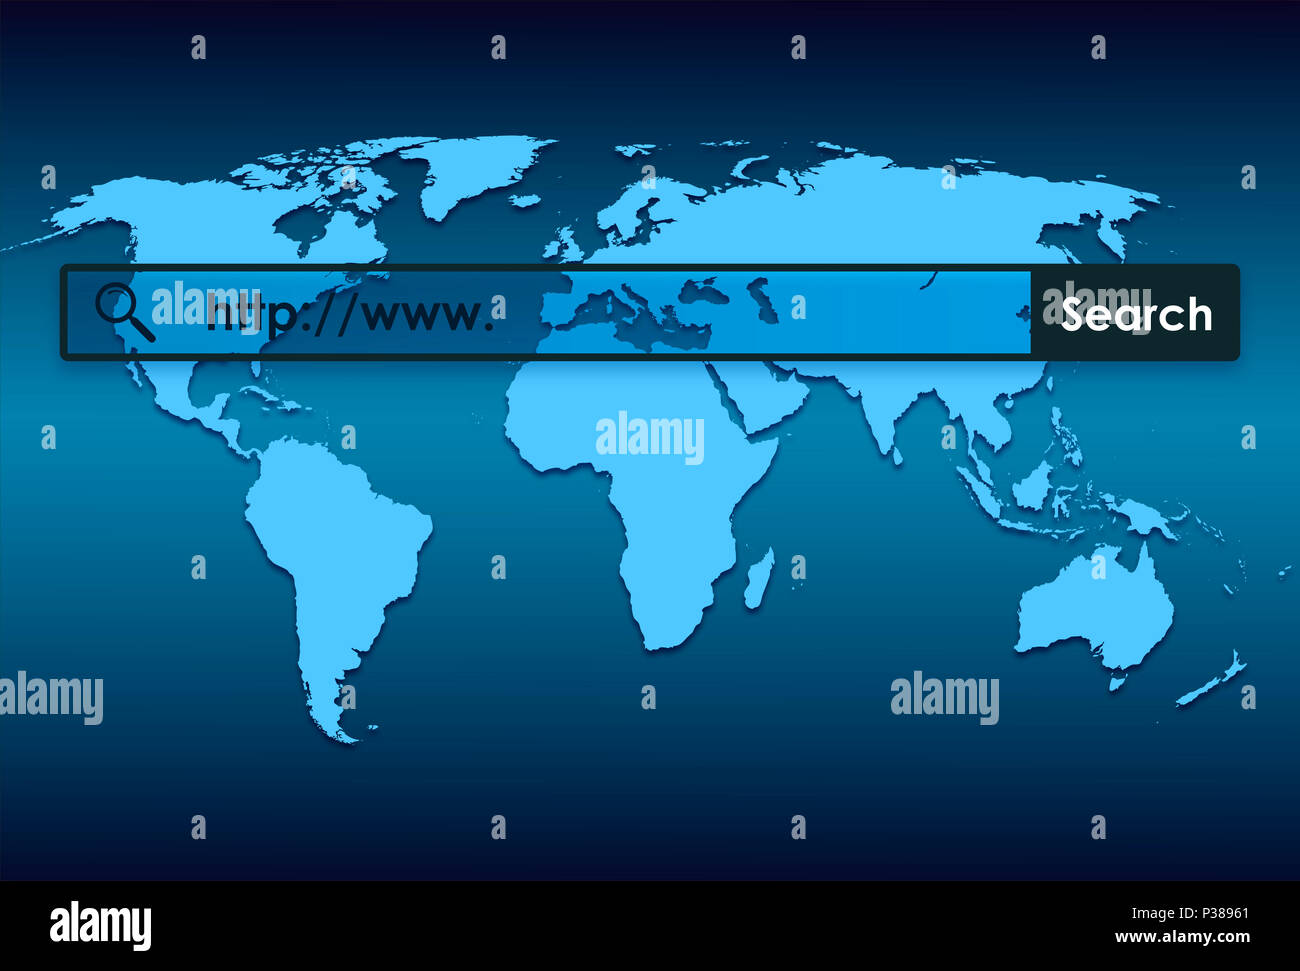 Search World Map.World Map And World Wide Web Searching Stock Photo 208551225 Alamy